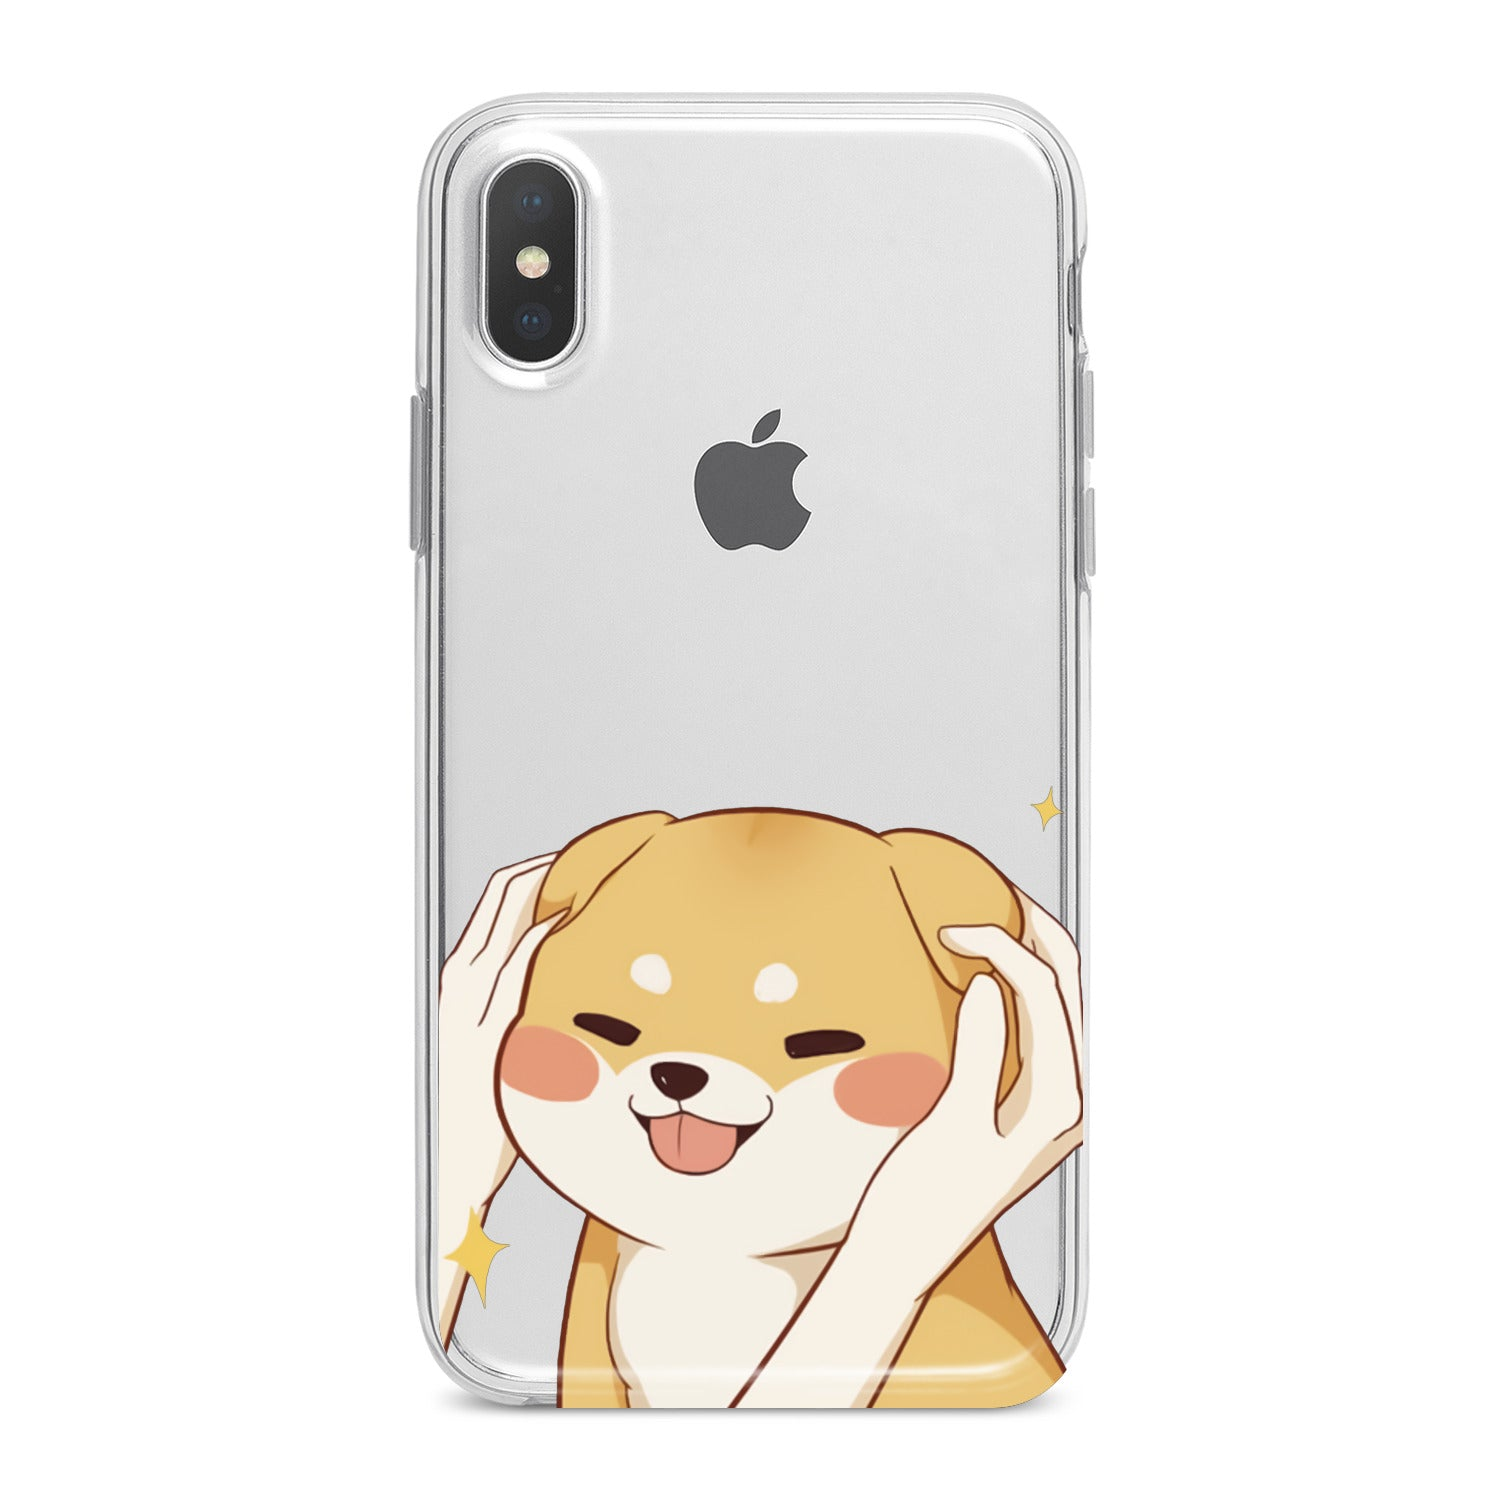 Lex Altern Kawaii Shiba Inu Phone Case for your iPhone & Android phone.